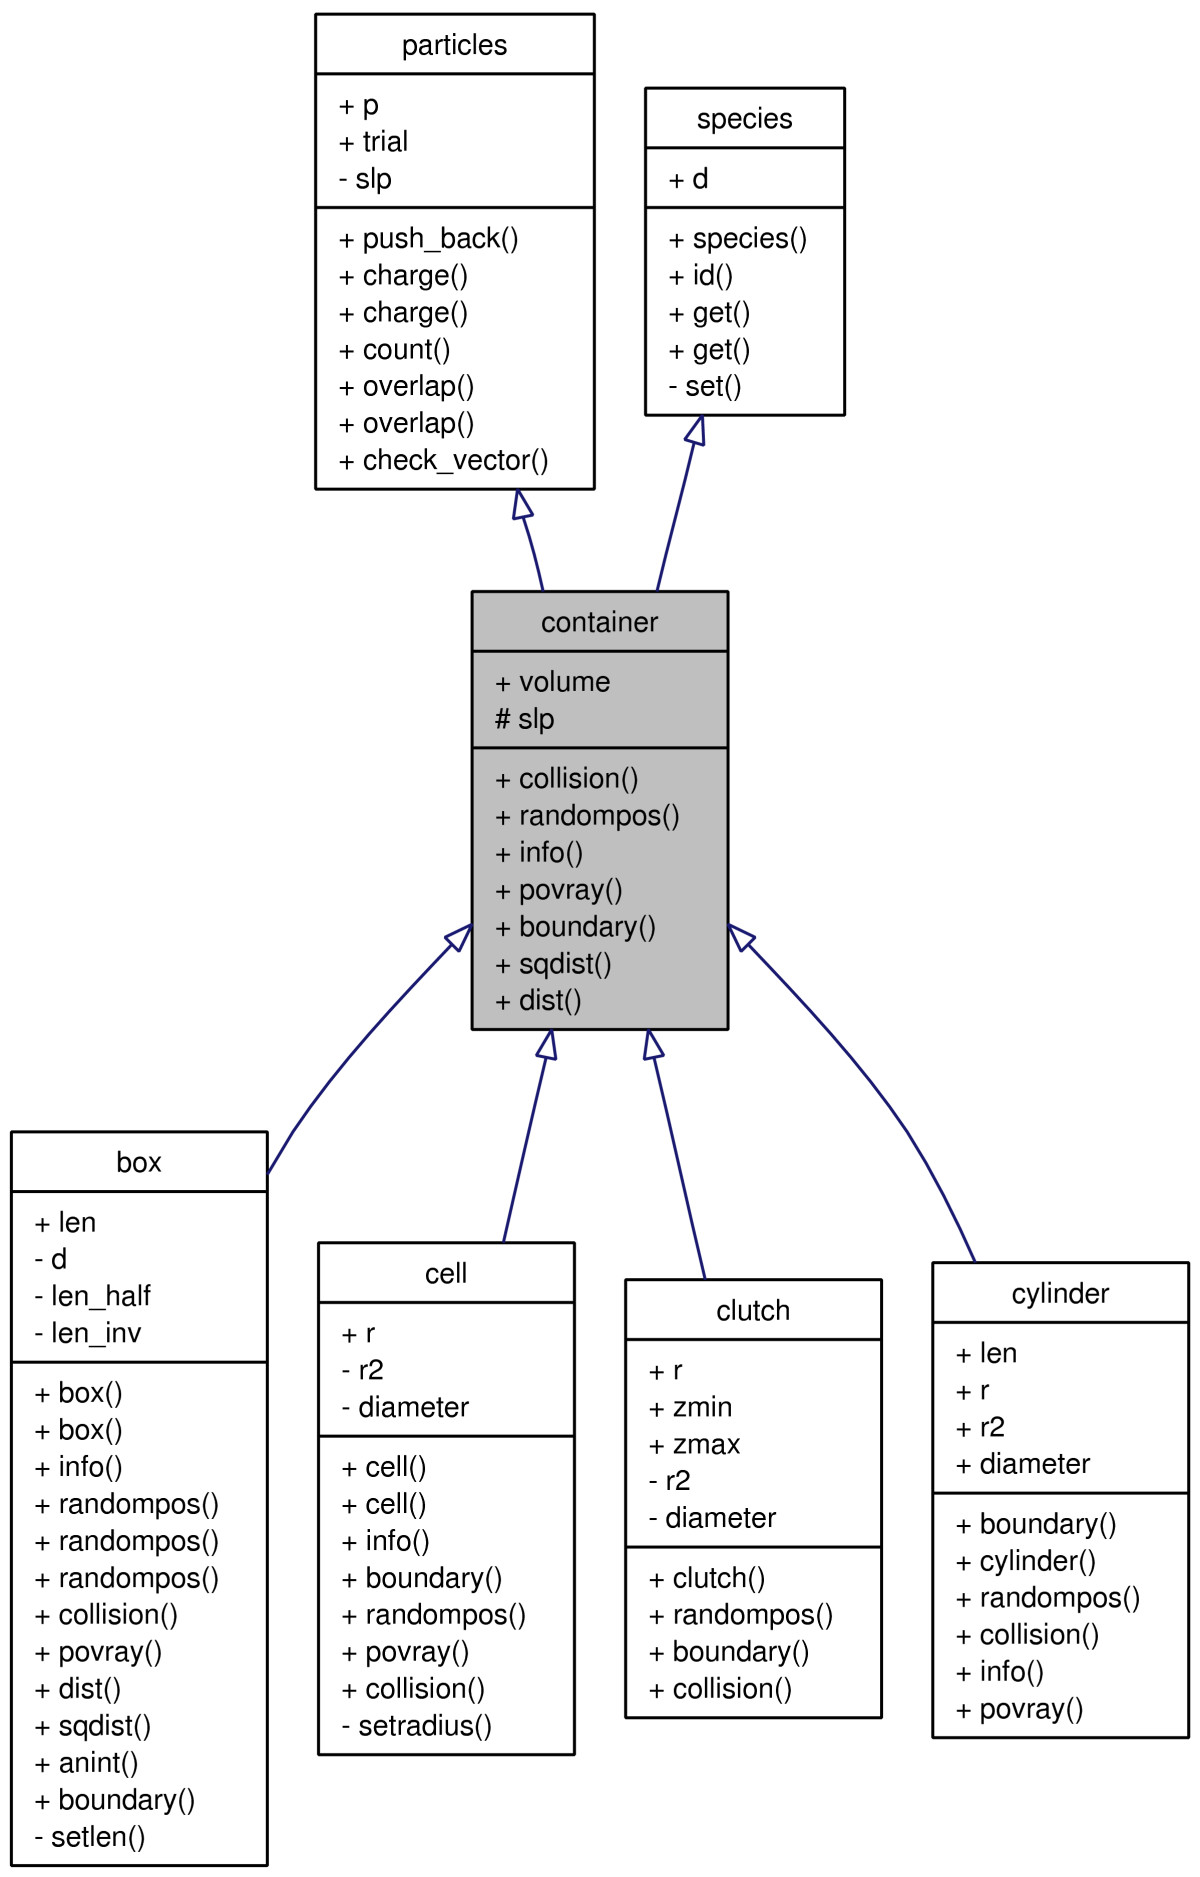 https://static-content.springer.com/image/art%3A10.1186%2F1751-0473-3-1/MediaObjects/13029_2007_Article_18_Fig1_HTML.jpg